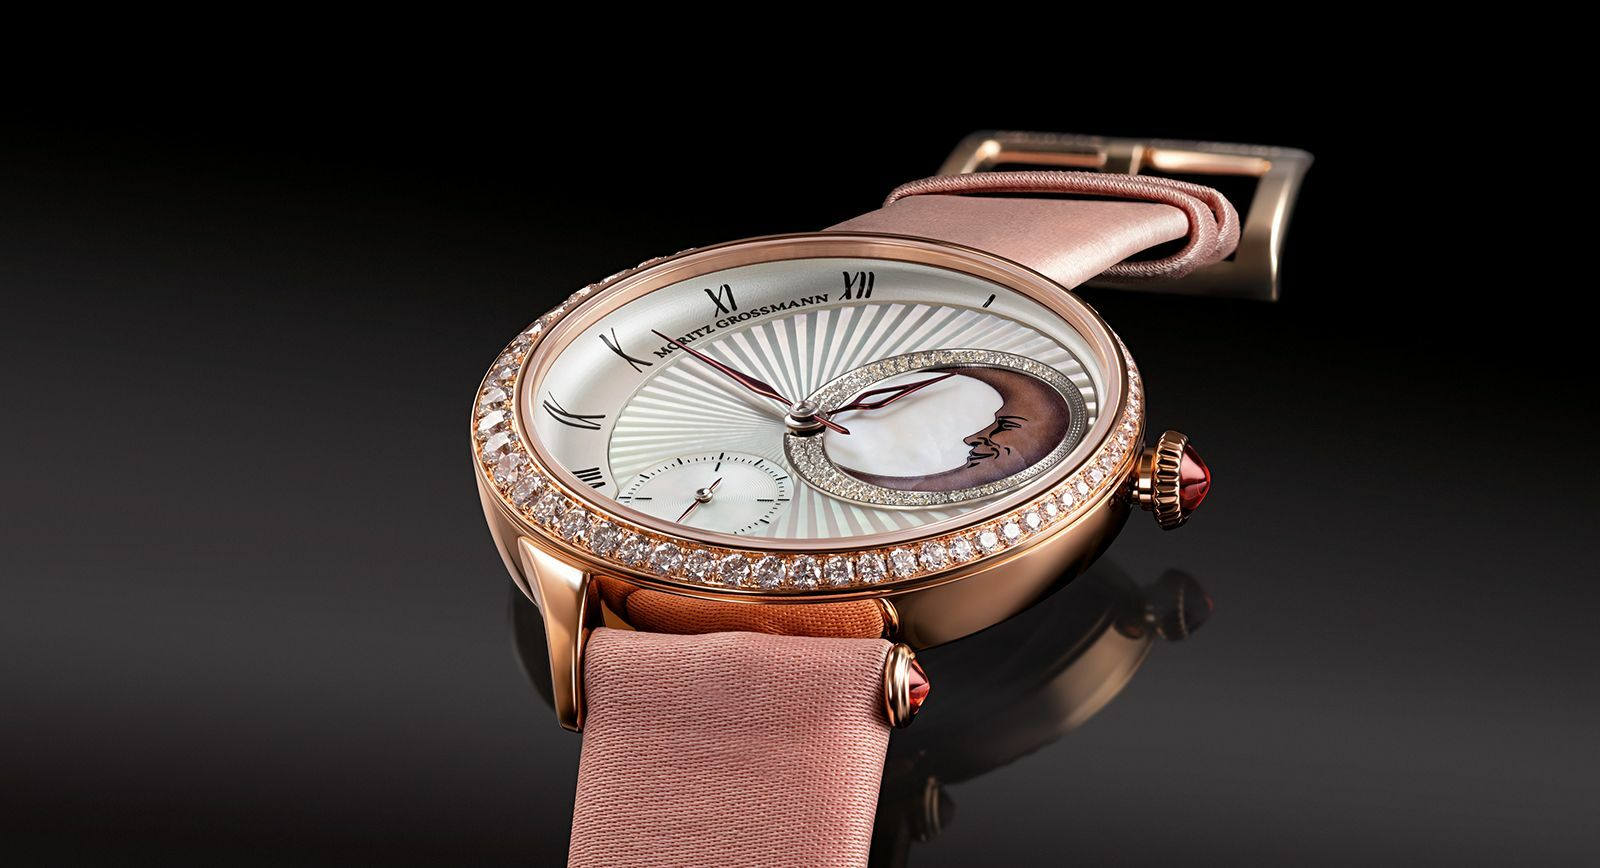 Moritz Grossmann Presents Tefnut Sleeping Beauty in Michael Koh Design